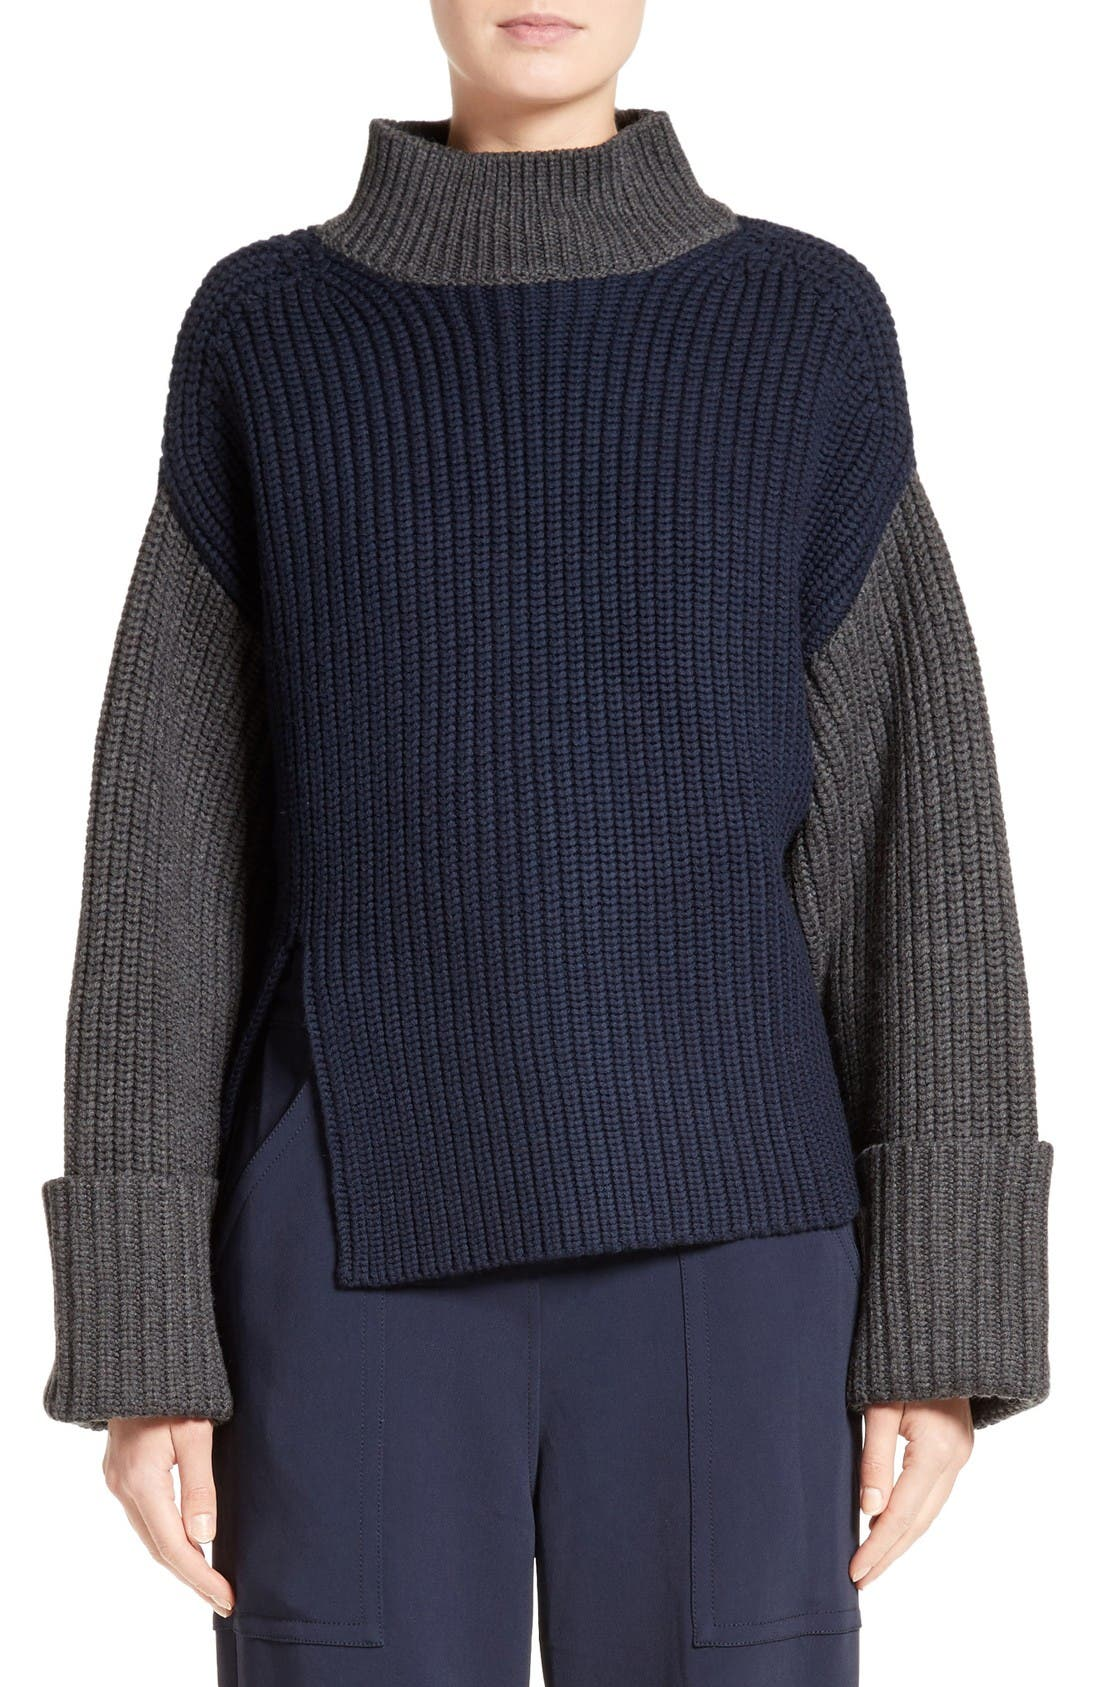 Alternate Image 1 Selected - Victor Alfaro Colorblock Merino Wool Turtleneck Sweater